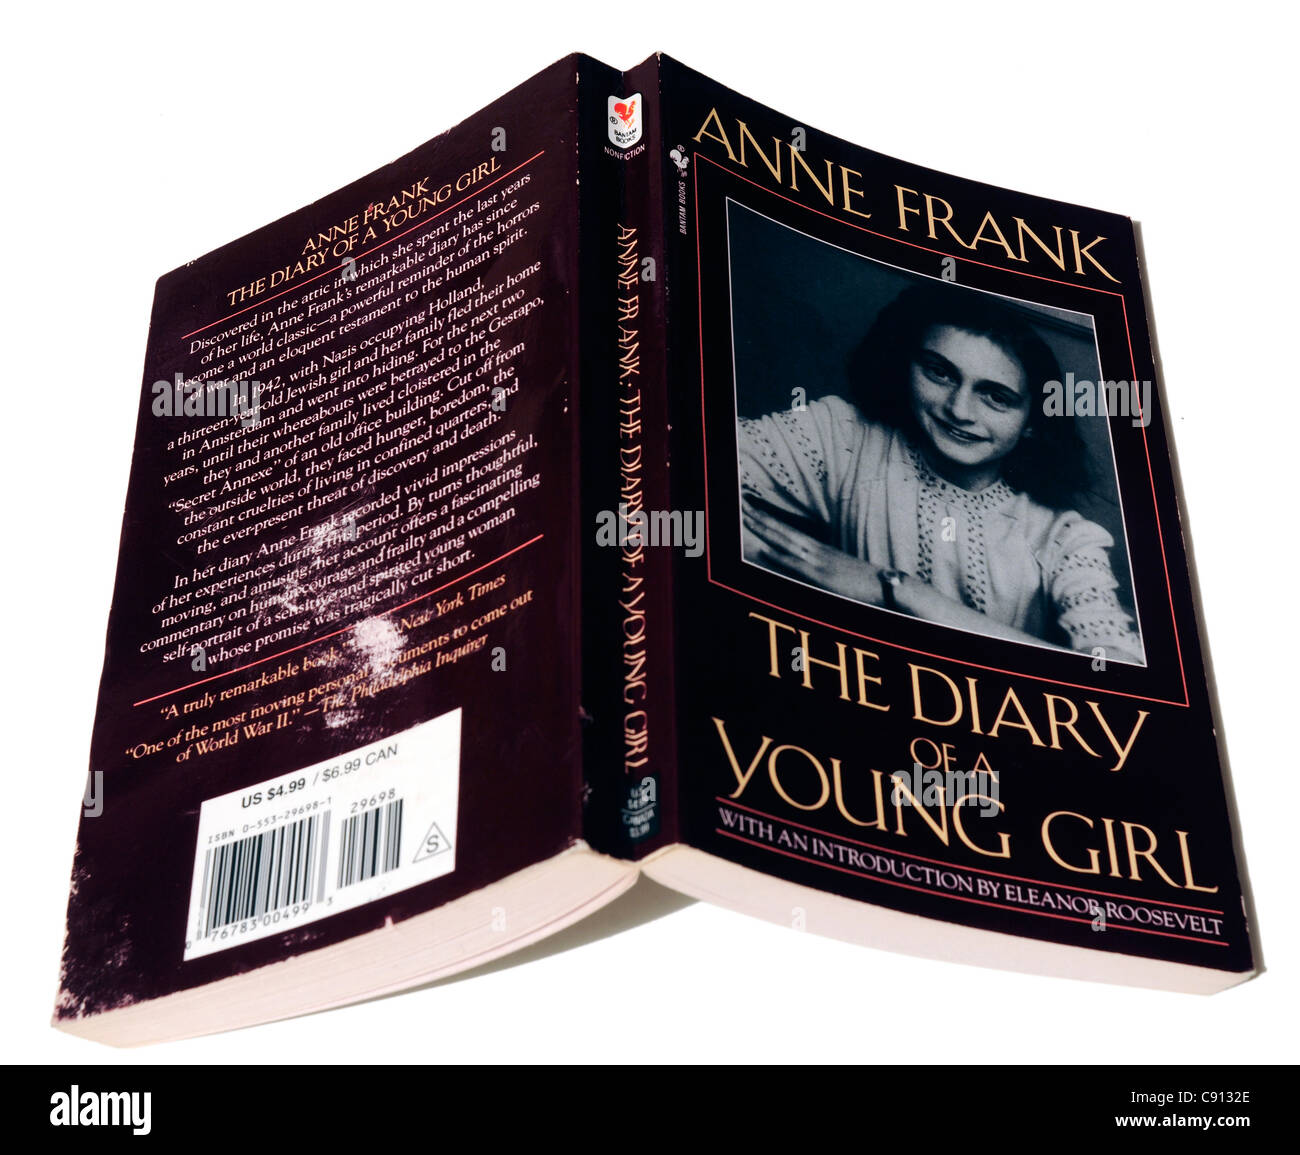 The Diary of Anne Frank - Stock Image